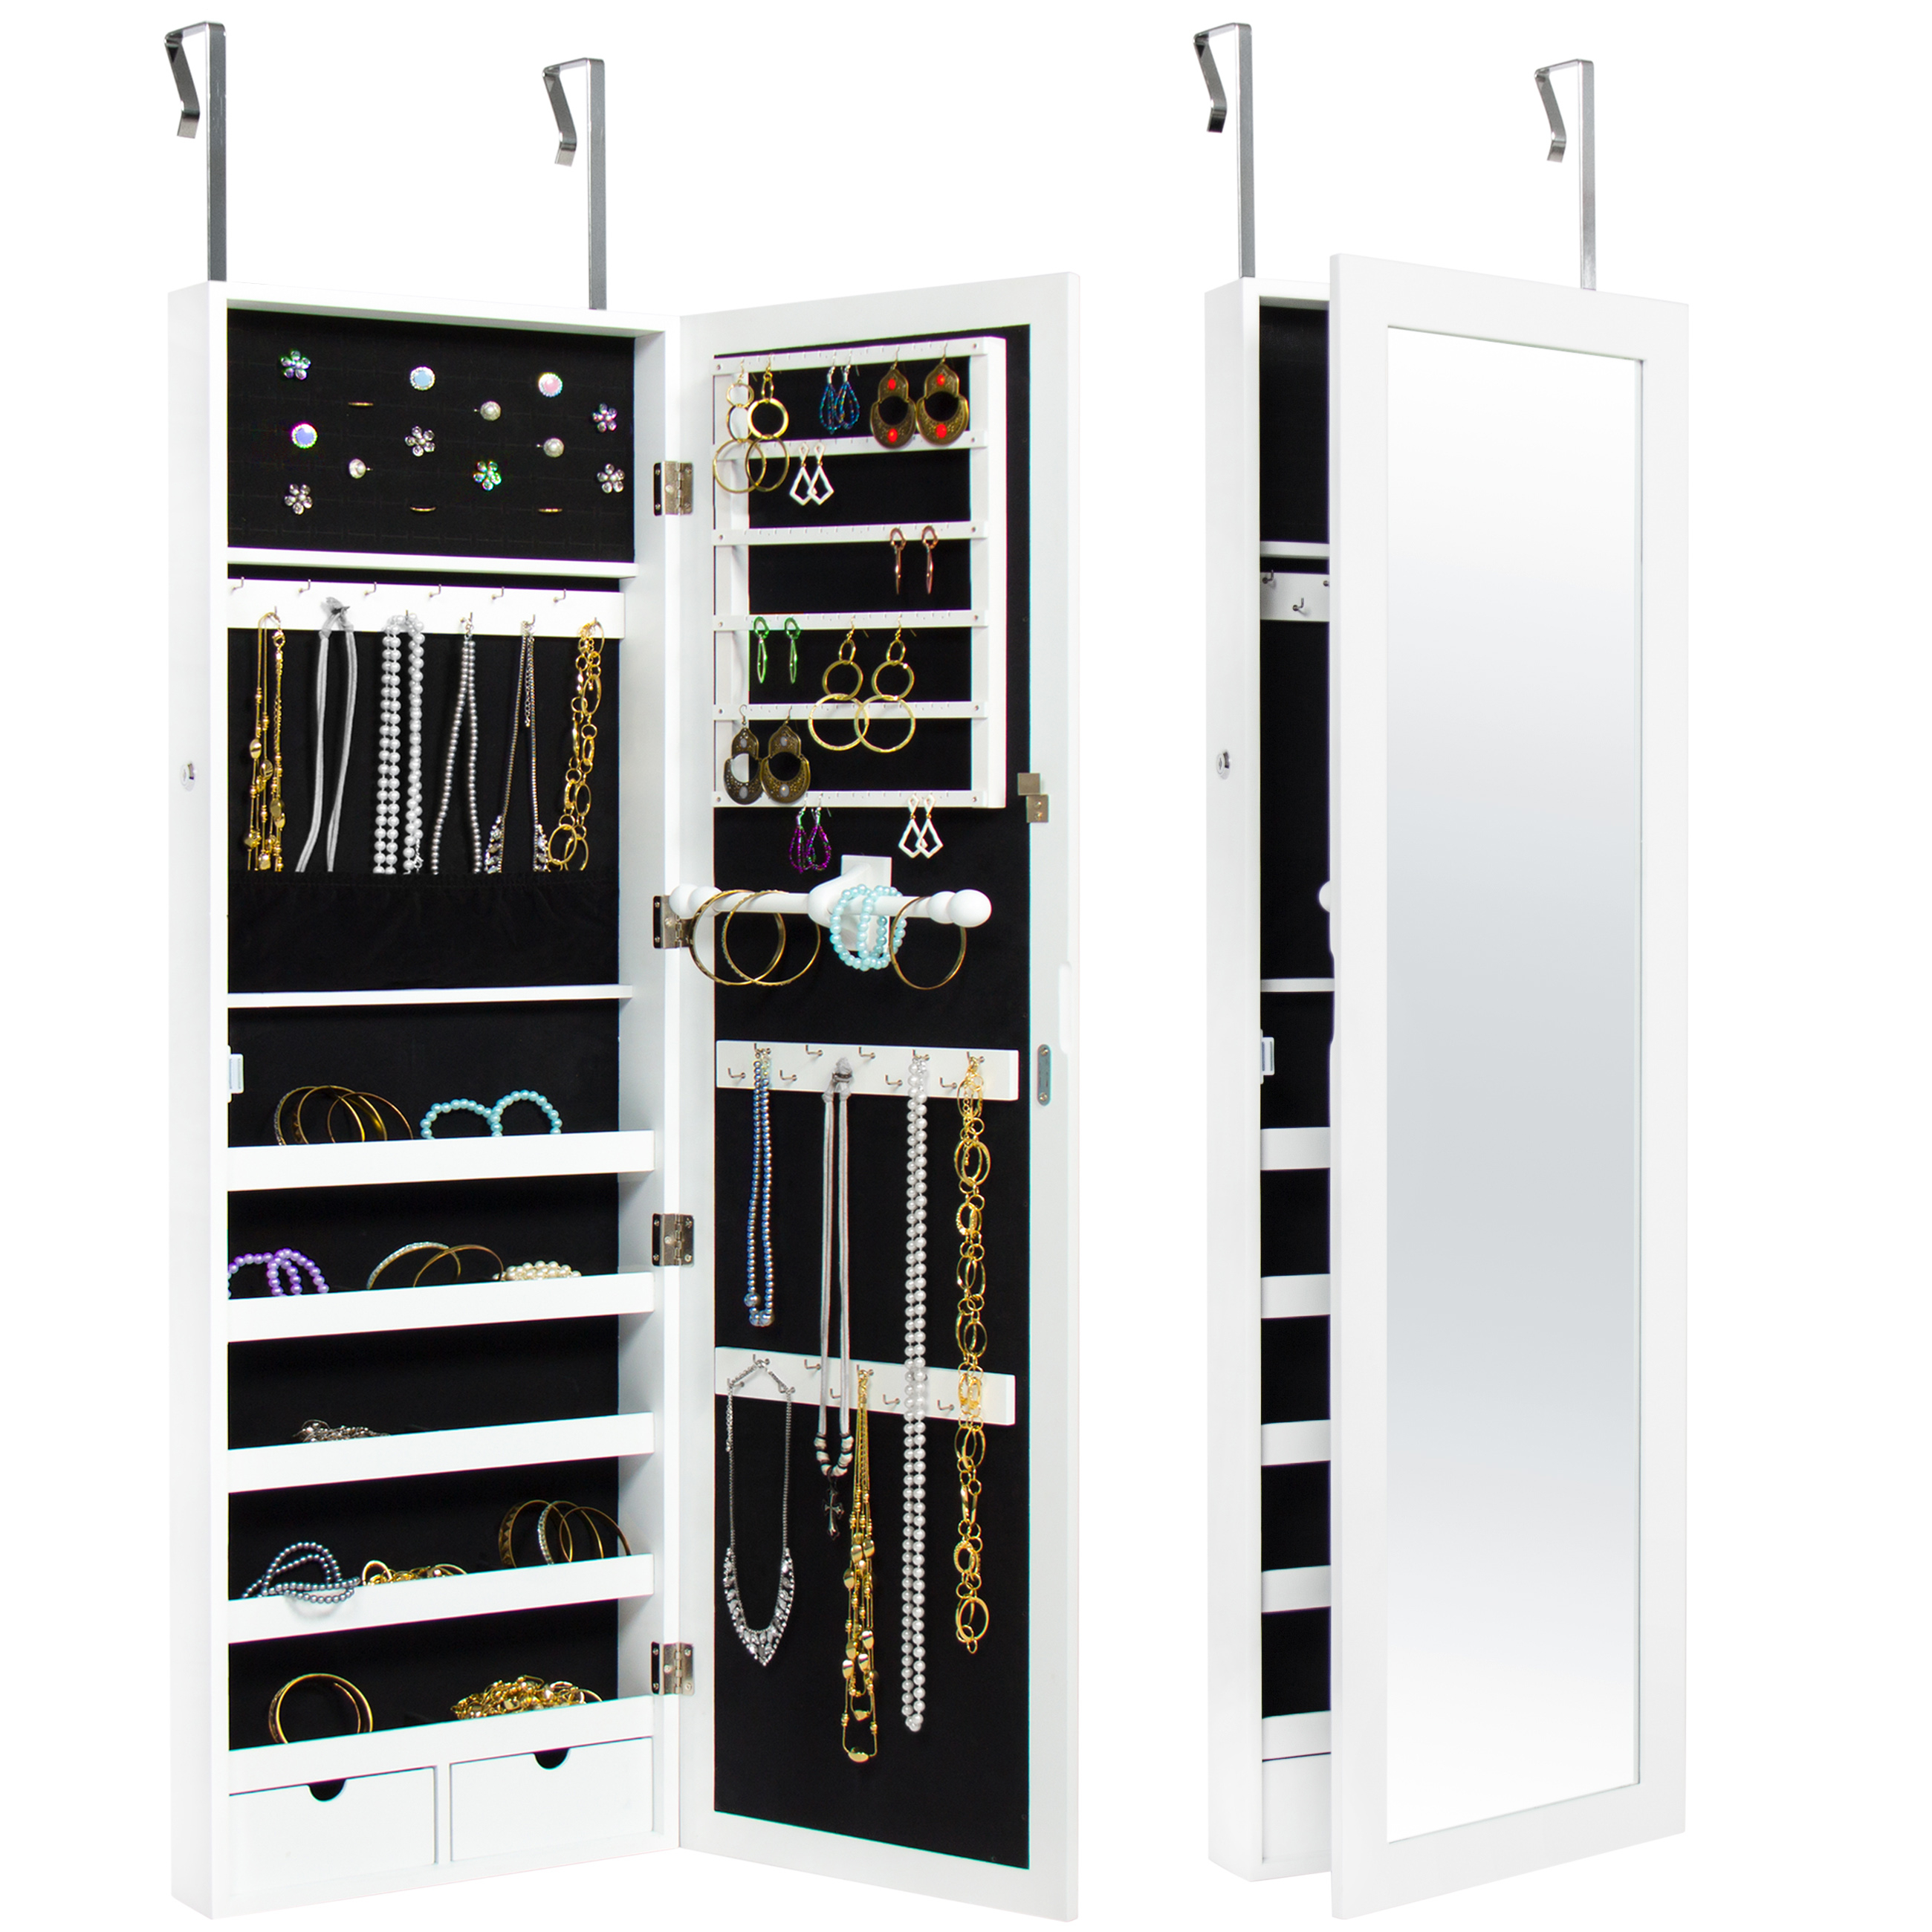 Famous Best Choice Products Mirrored Hanging Jewelry Cabinet Armoire Organizer  Over Door Wall Mount W/ Keys  White Within Jewelry Wall Mirrors (View 10 of 20)